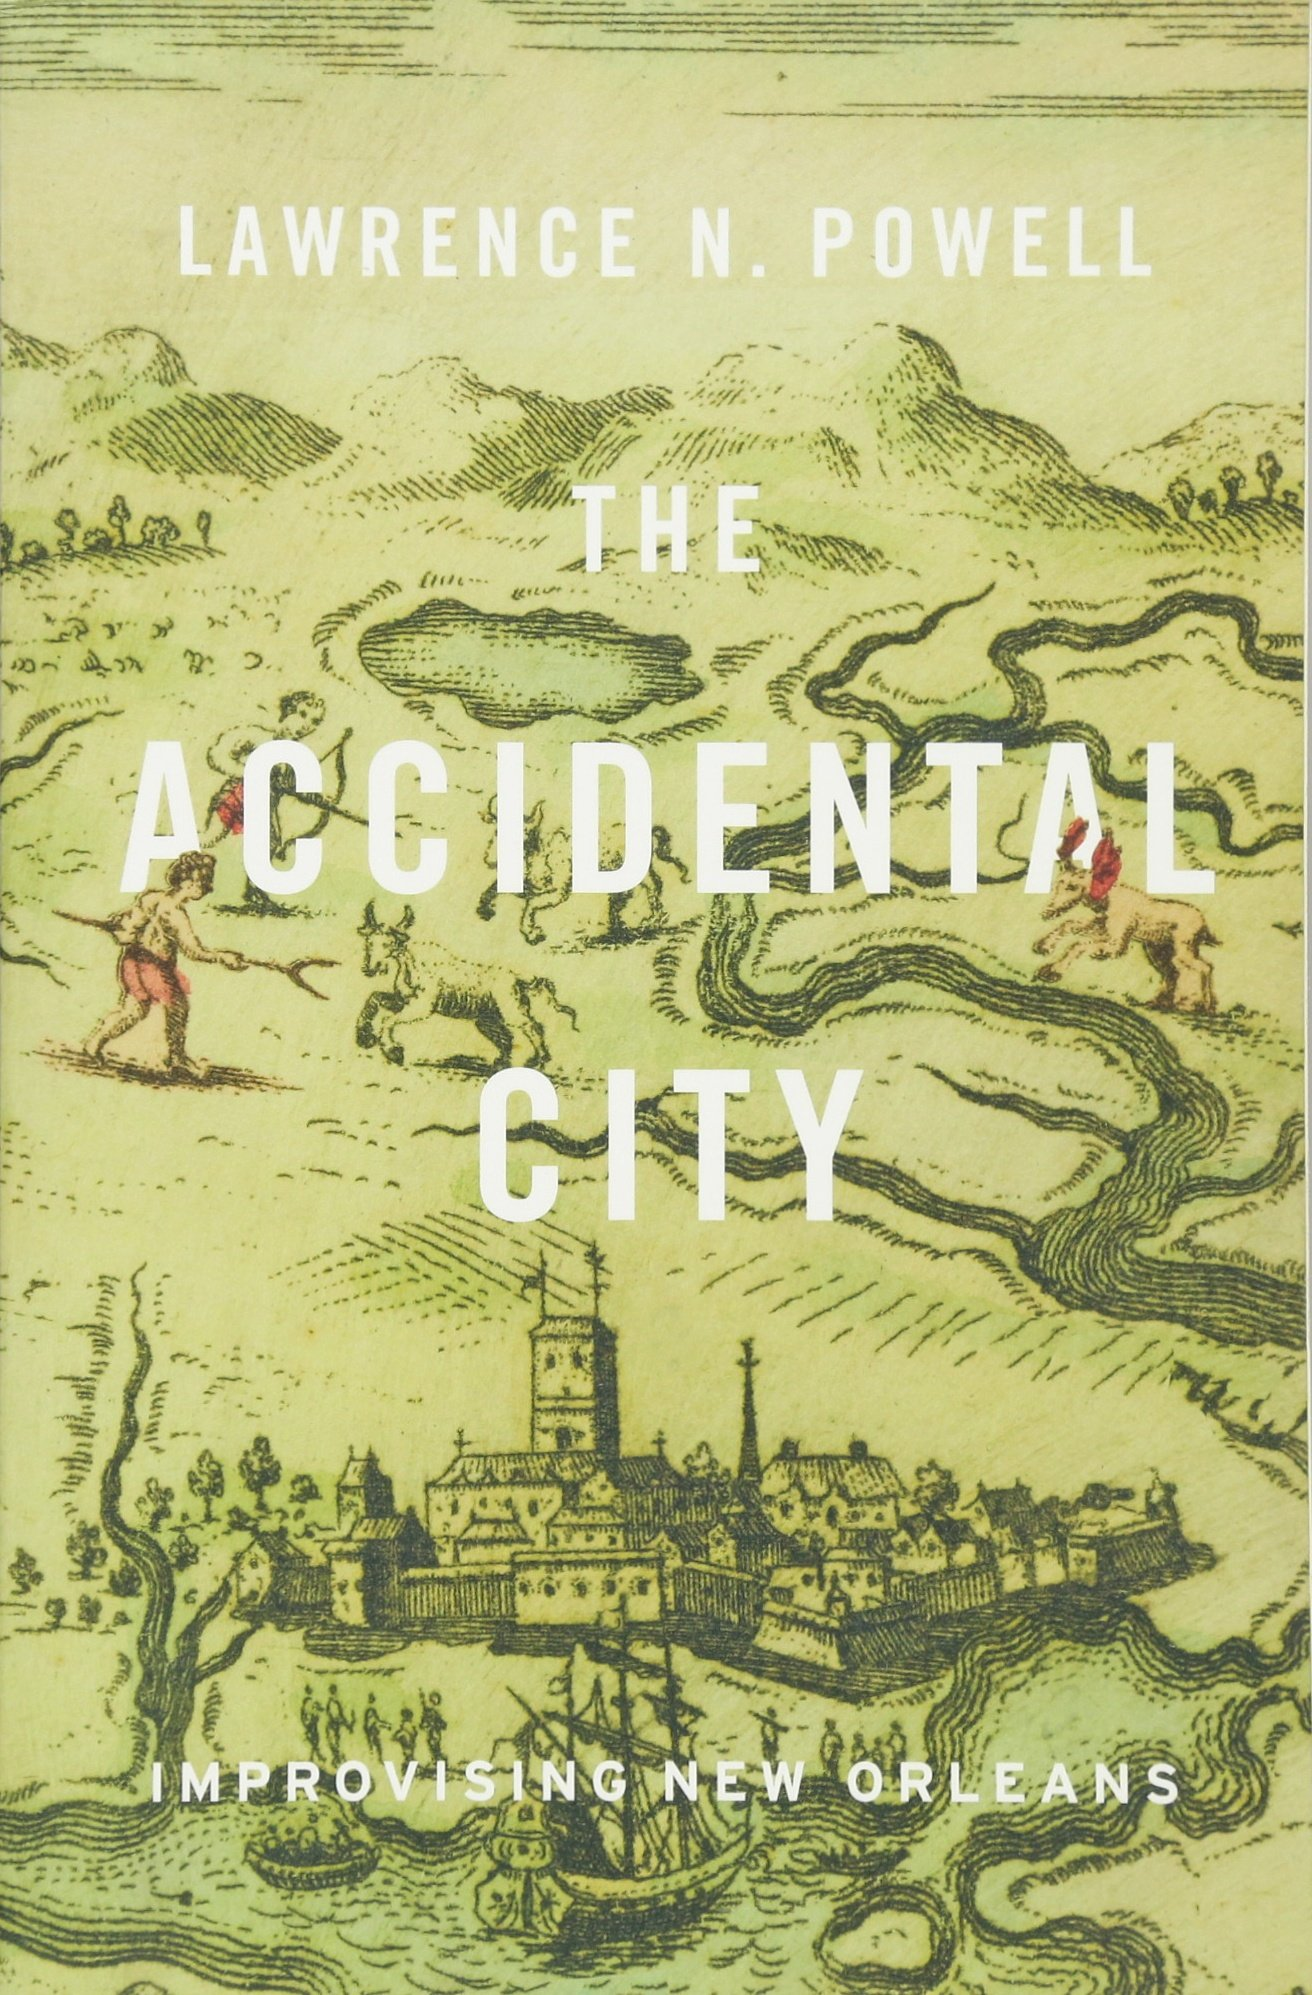 The Accidental City: Improvising New Orleans: Lawrence N. Powell:  9780674725904: Amazon.com: Books